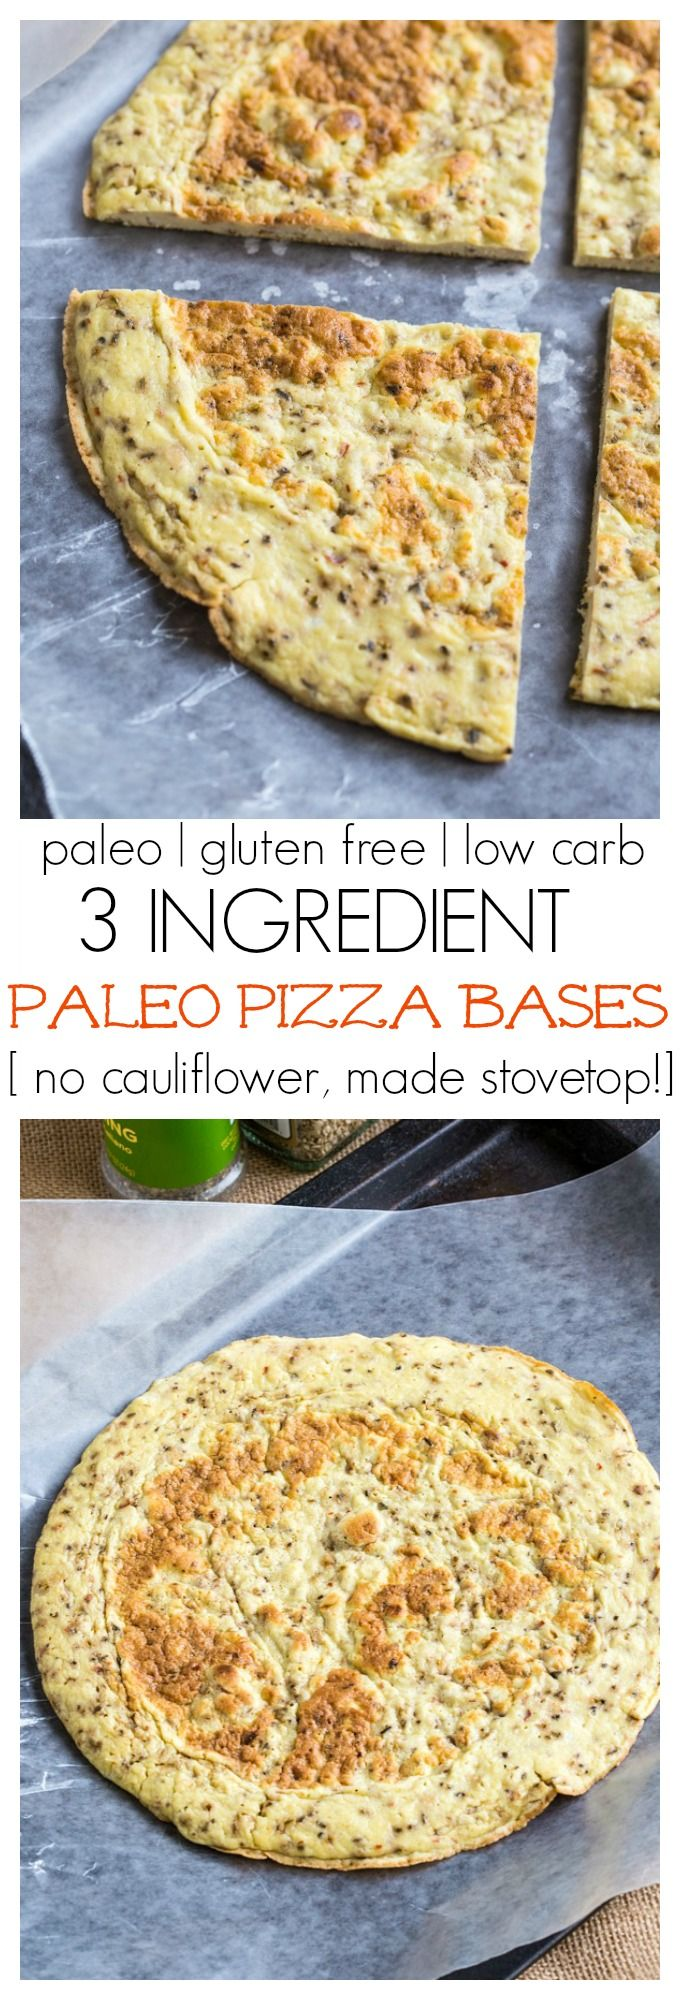 3 Ingredient Paleo Pizza Bases which have NO cauliflower and are made stovetop- They are ready in no time and chock full of protein! Gluten free and Whole30 friendly!